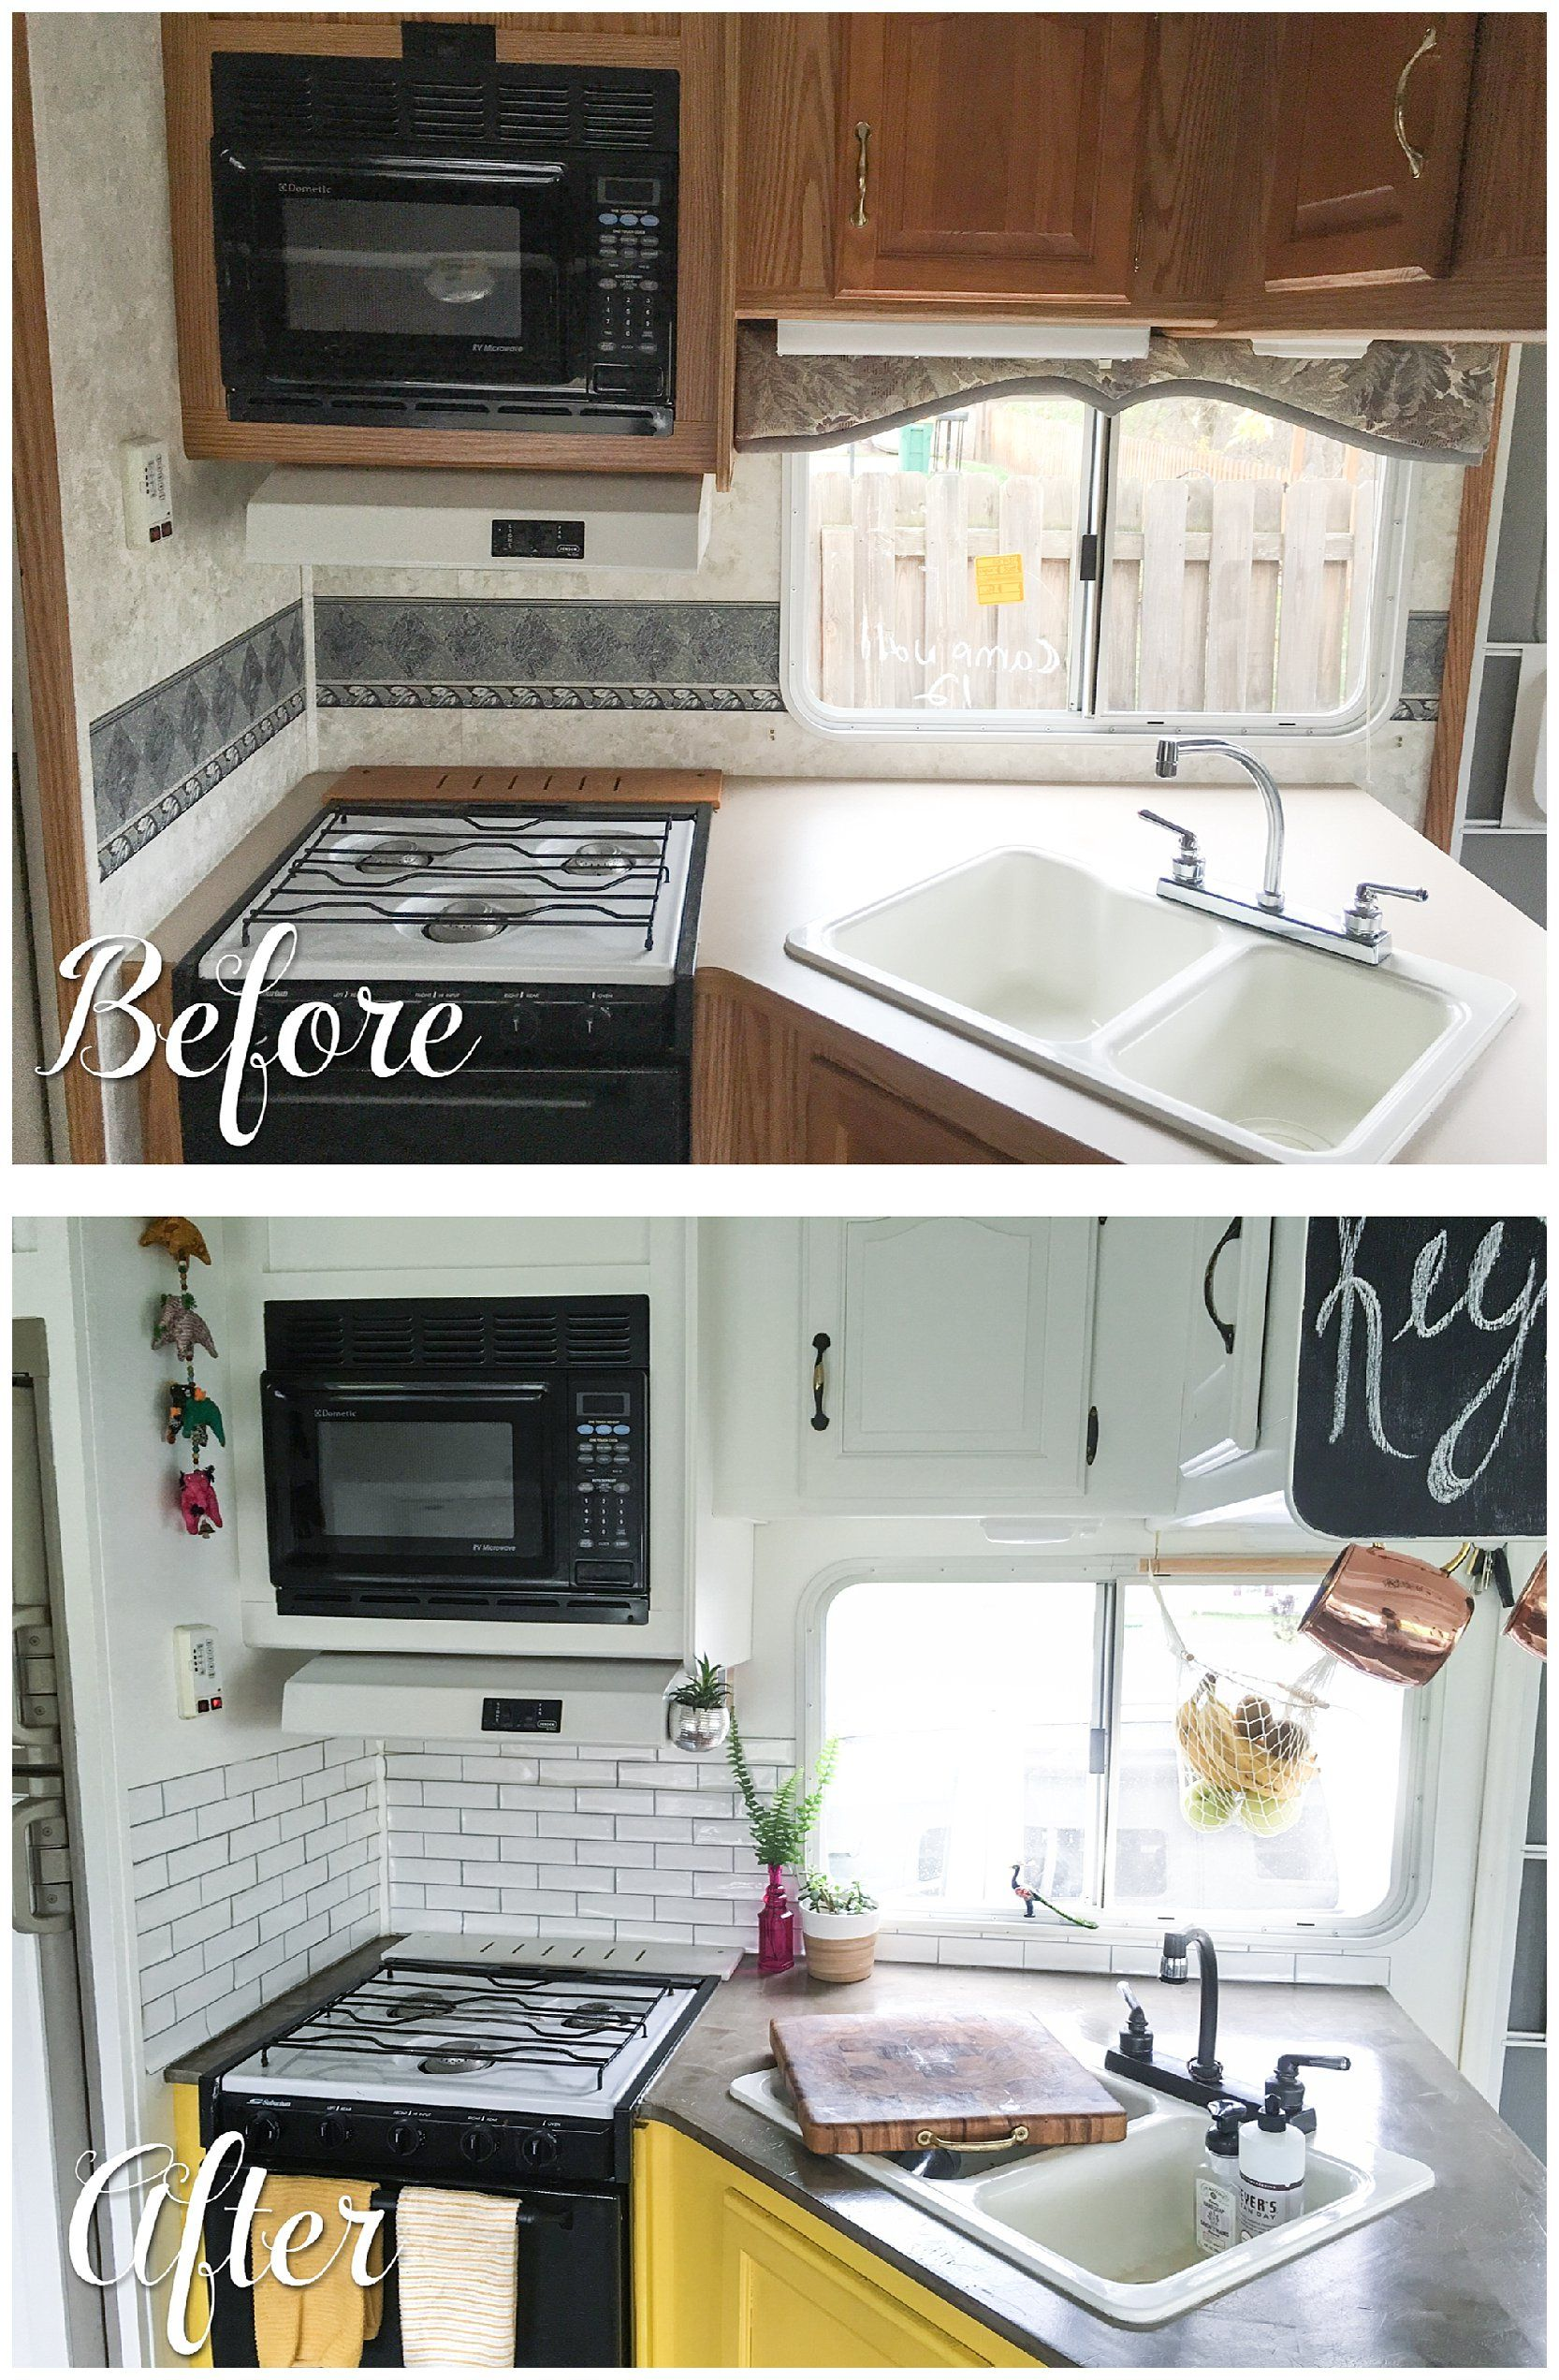 Camper Remodel Ideas 23 | Pinterest | Rv, Camper remodeling and Kitchens